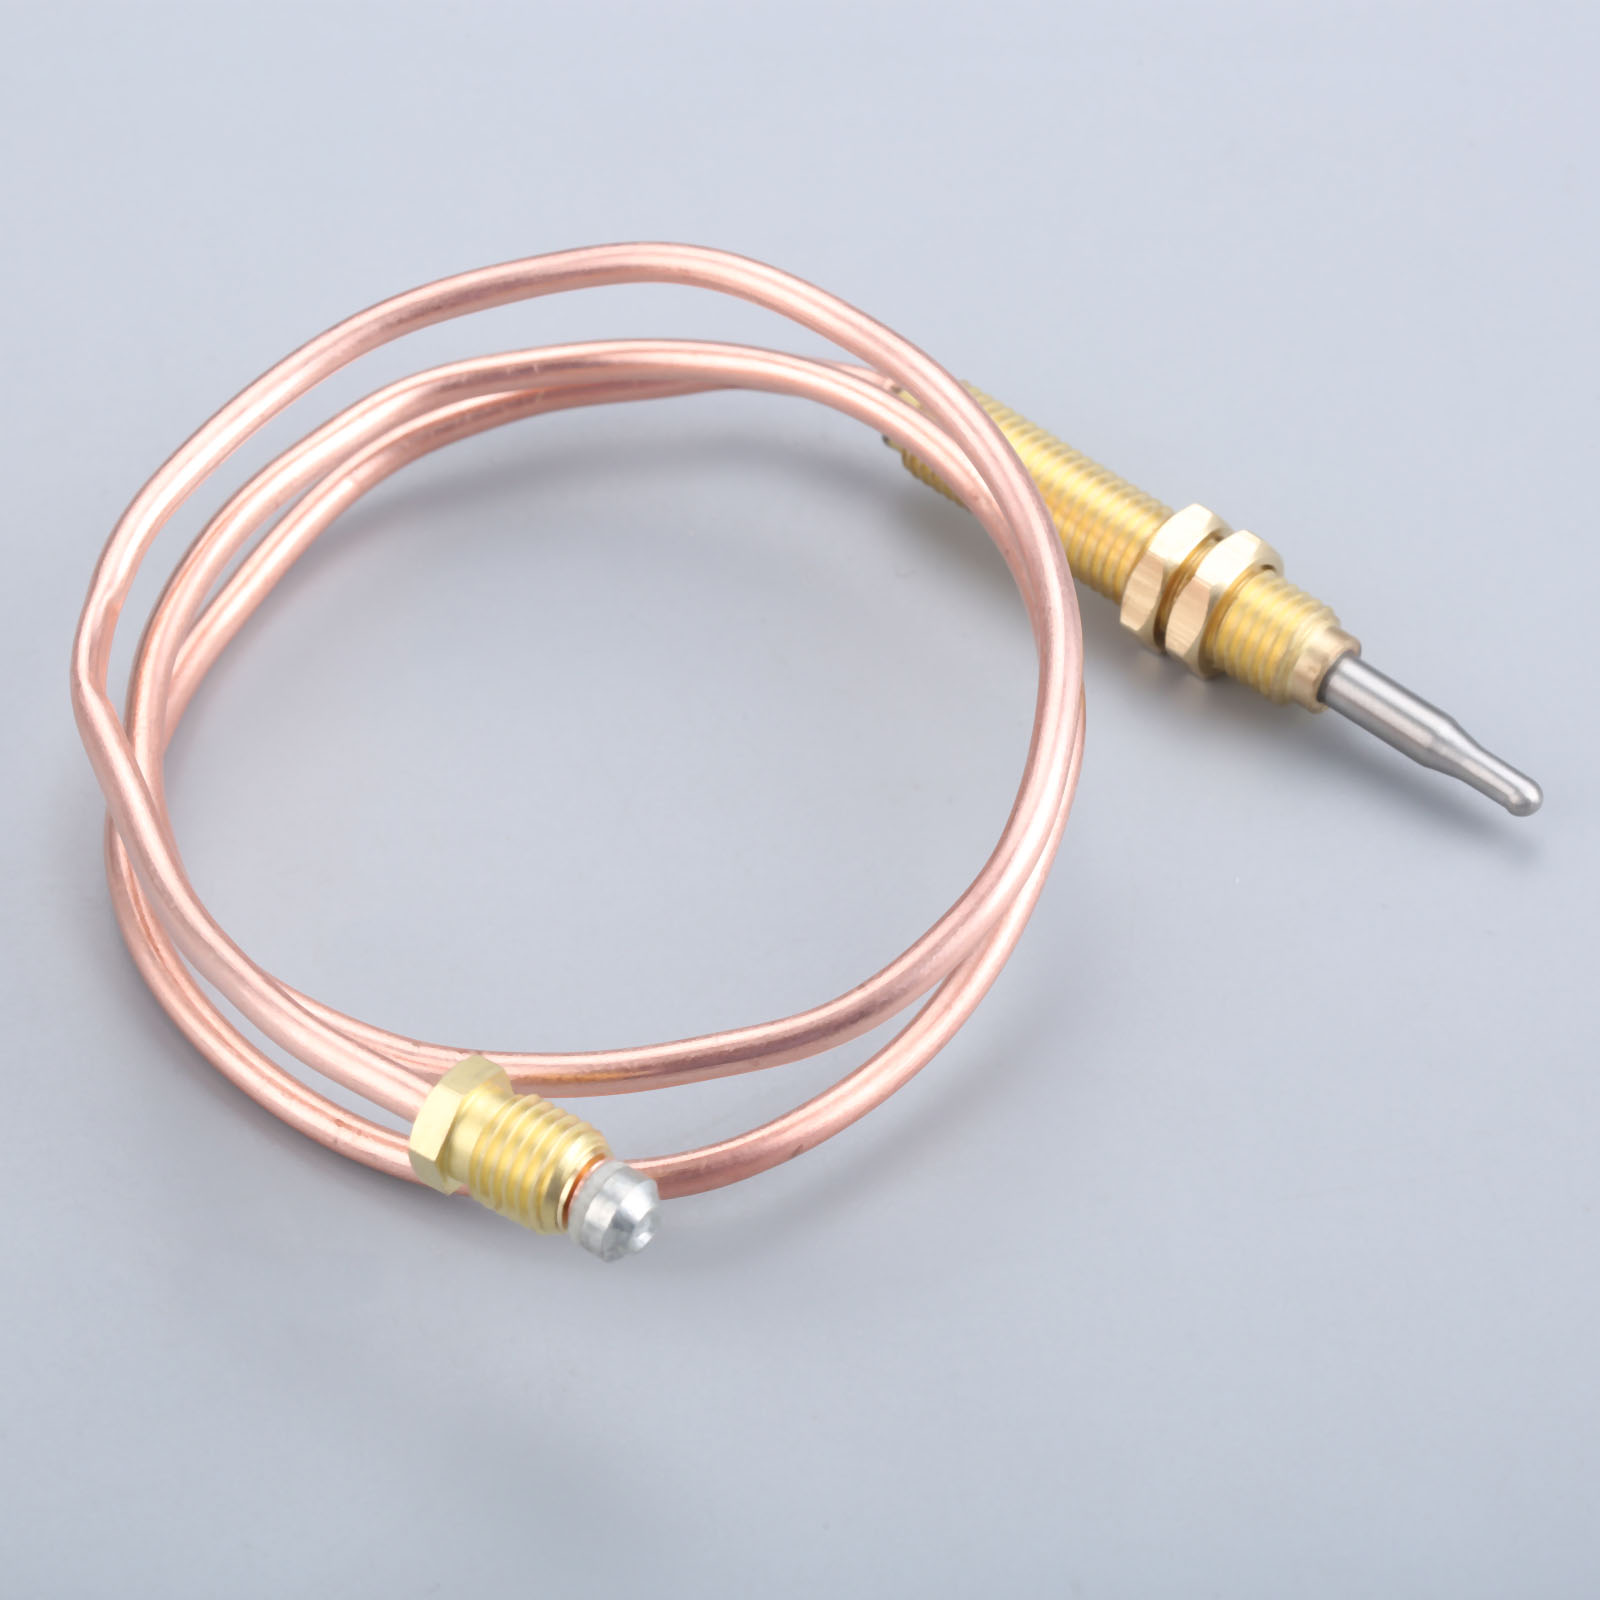 600mm BBQ M8x1 Universal Gas Thermocouple Head Thread For Outdoor Gas Heater